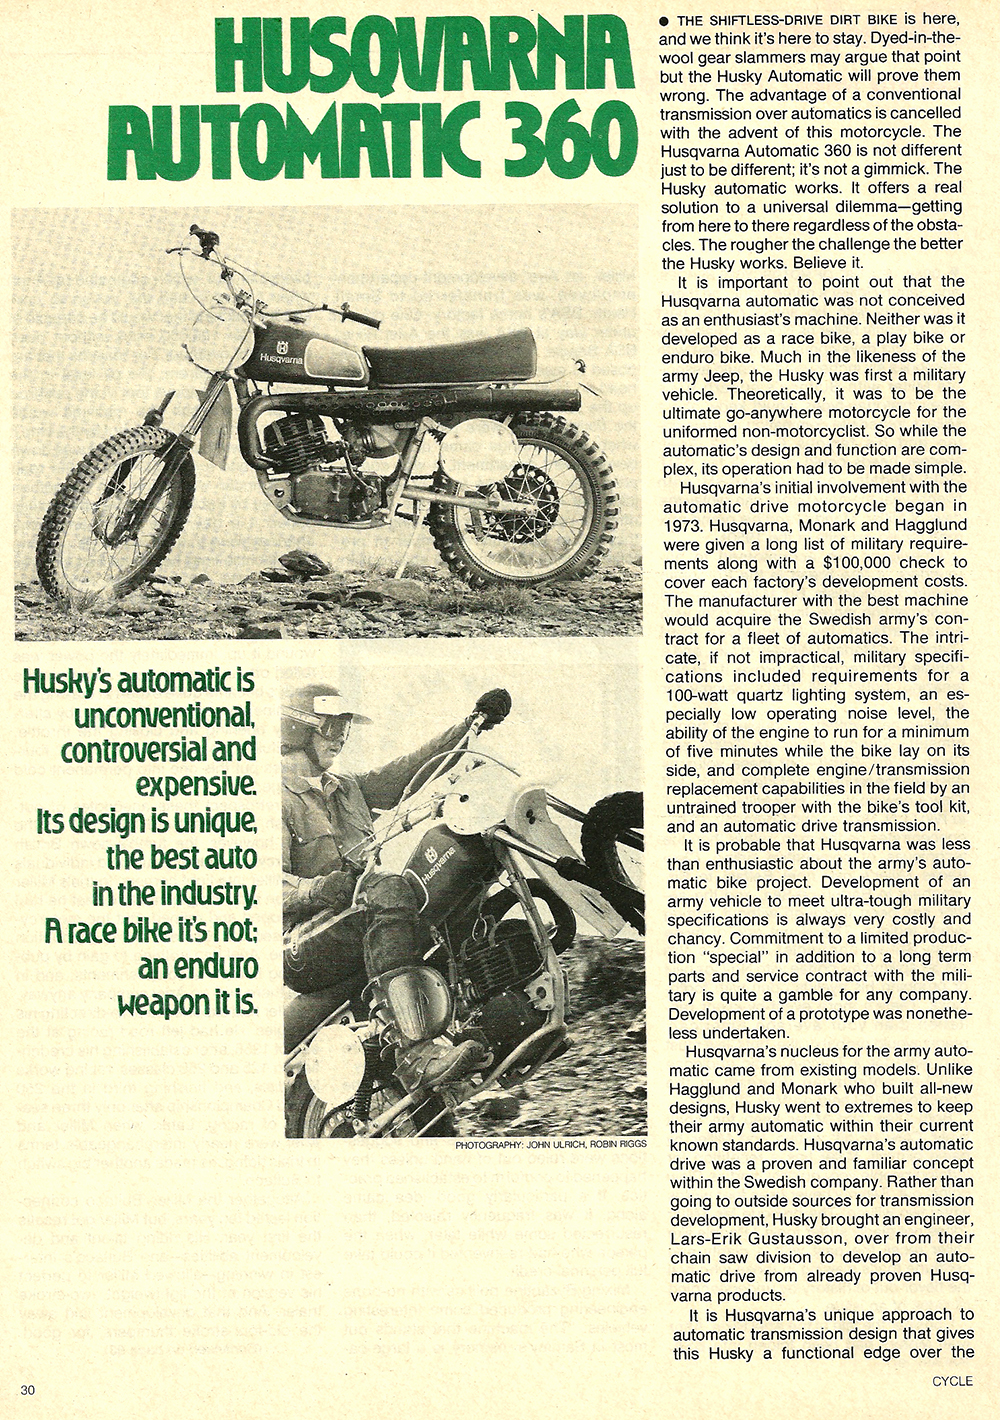 1977 Husqvarna Automatic 360 road test 1.jpg